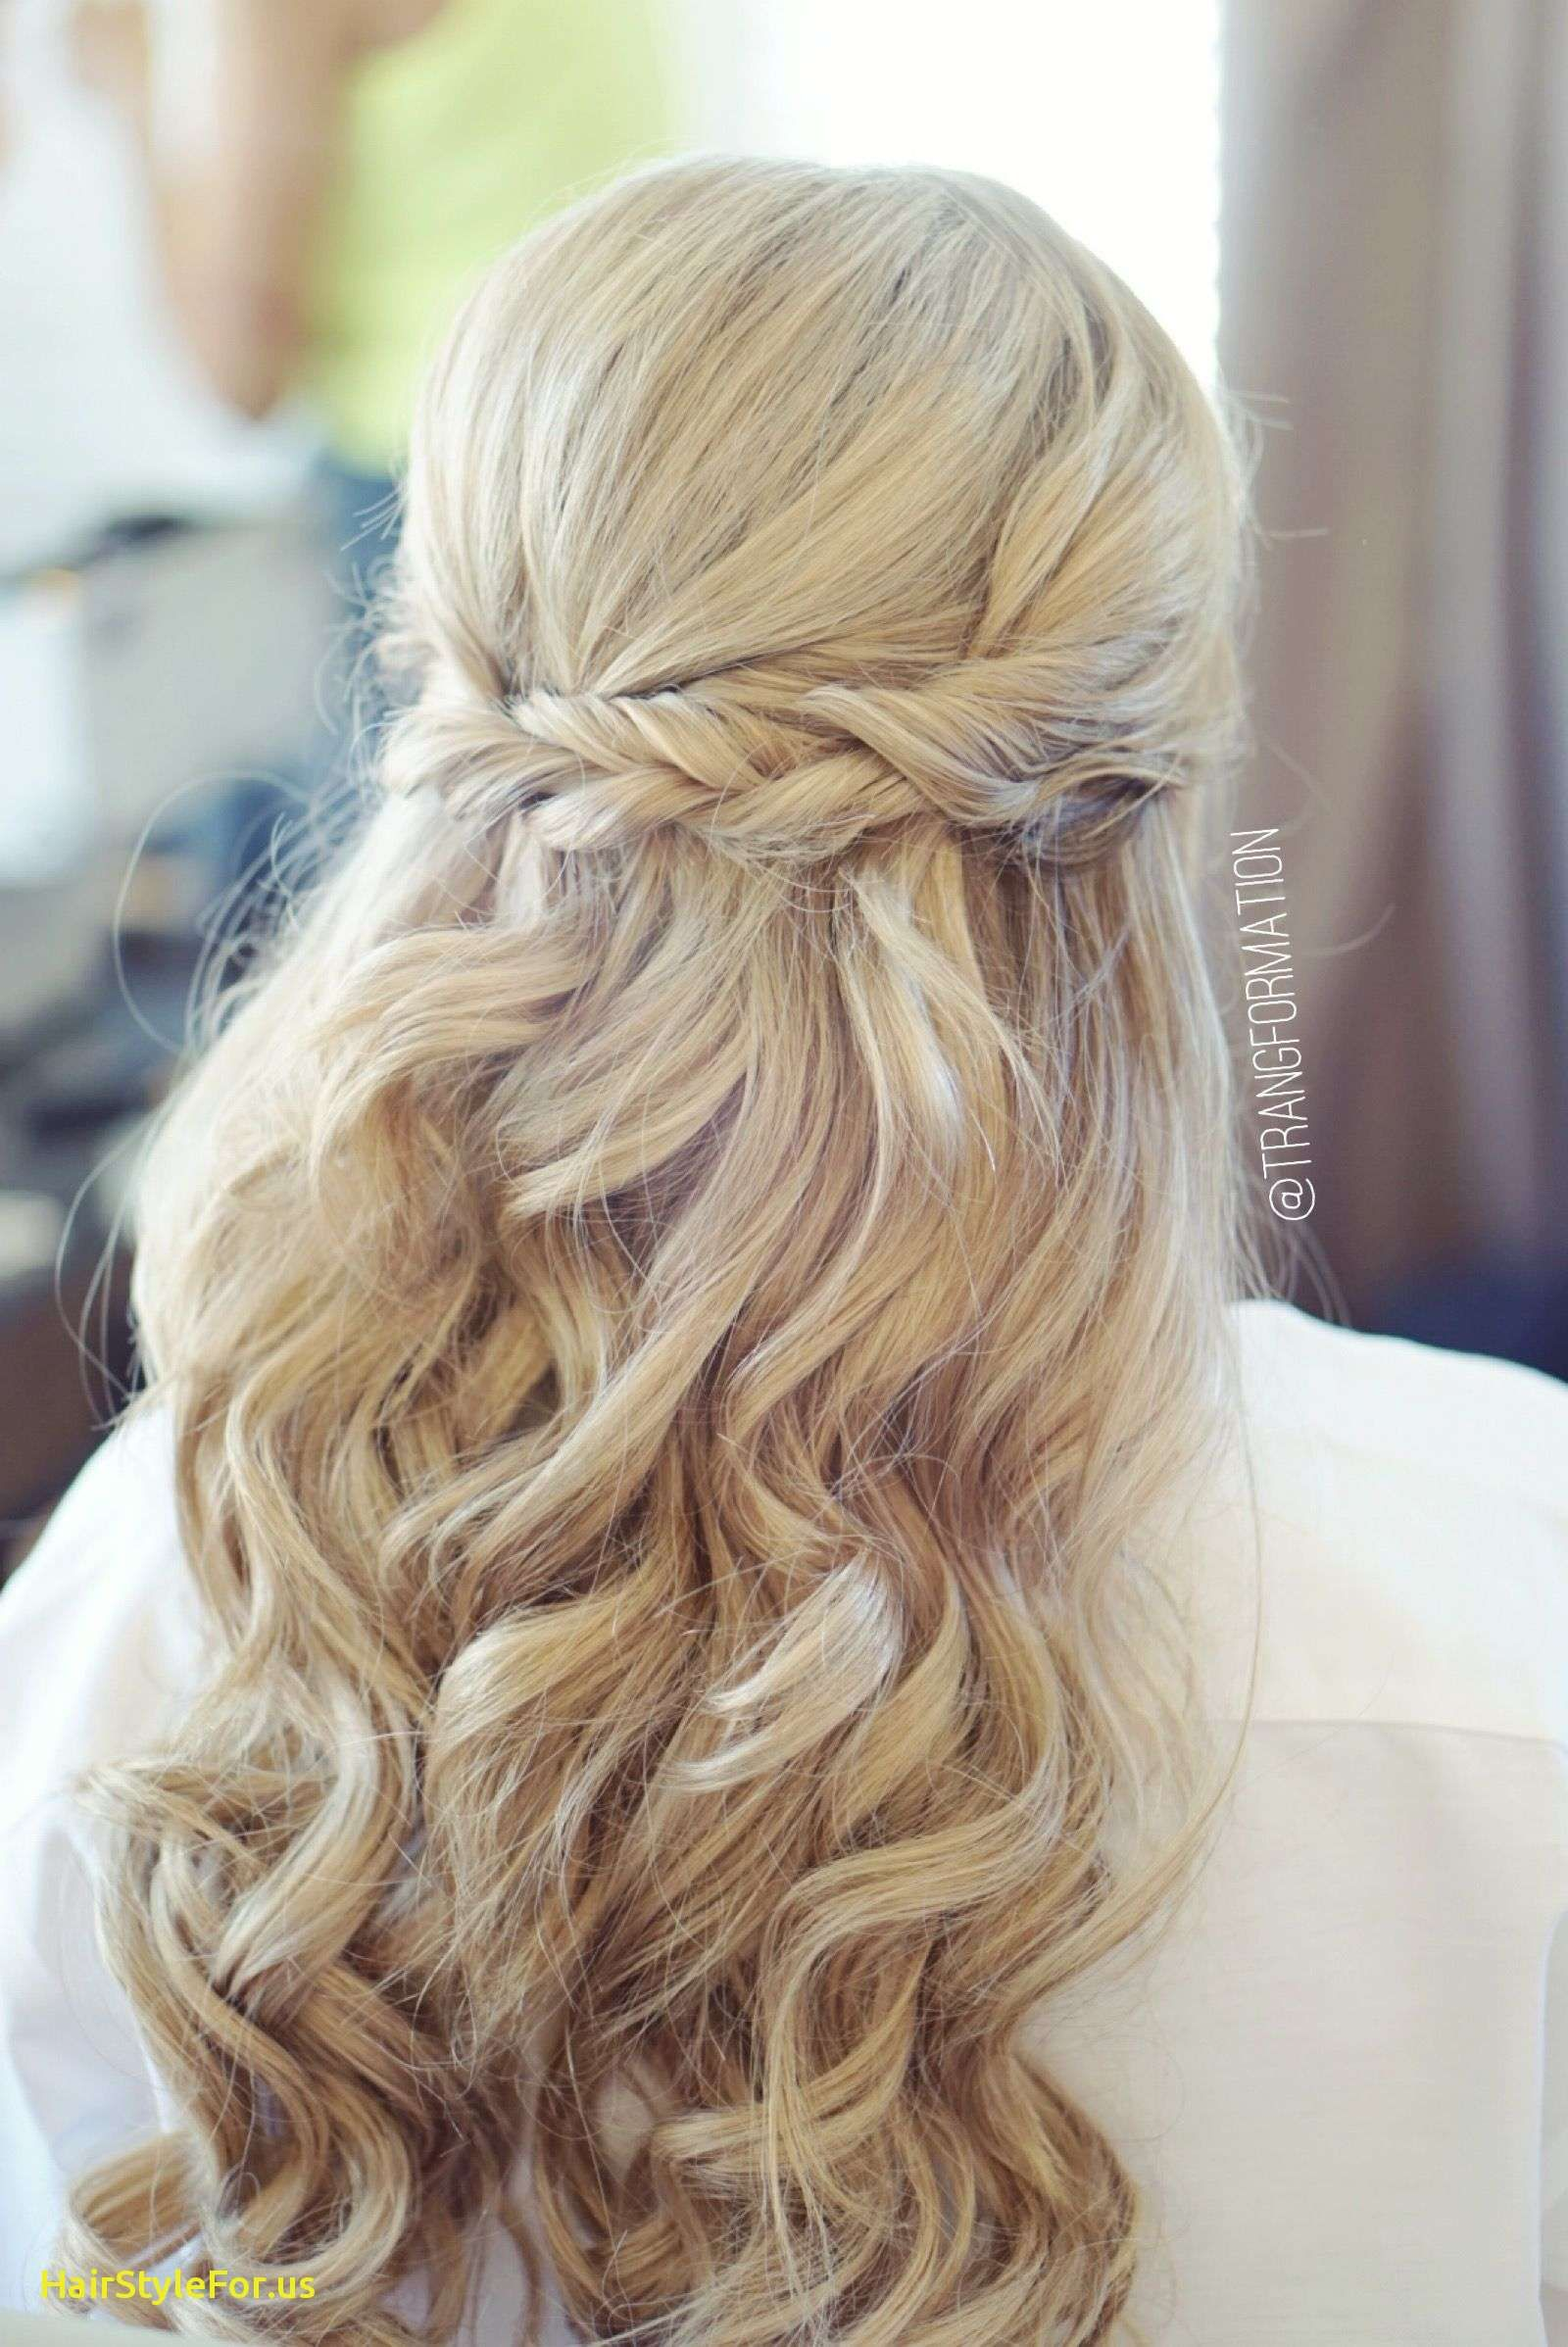 Best Of Wedding Hairstyles Half Up Half Down Christina Fox Best Of Wedding Hairstyles Half Up Half Down Allowed Prom Hair Down Hair Styles Long Hair Styles